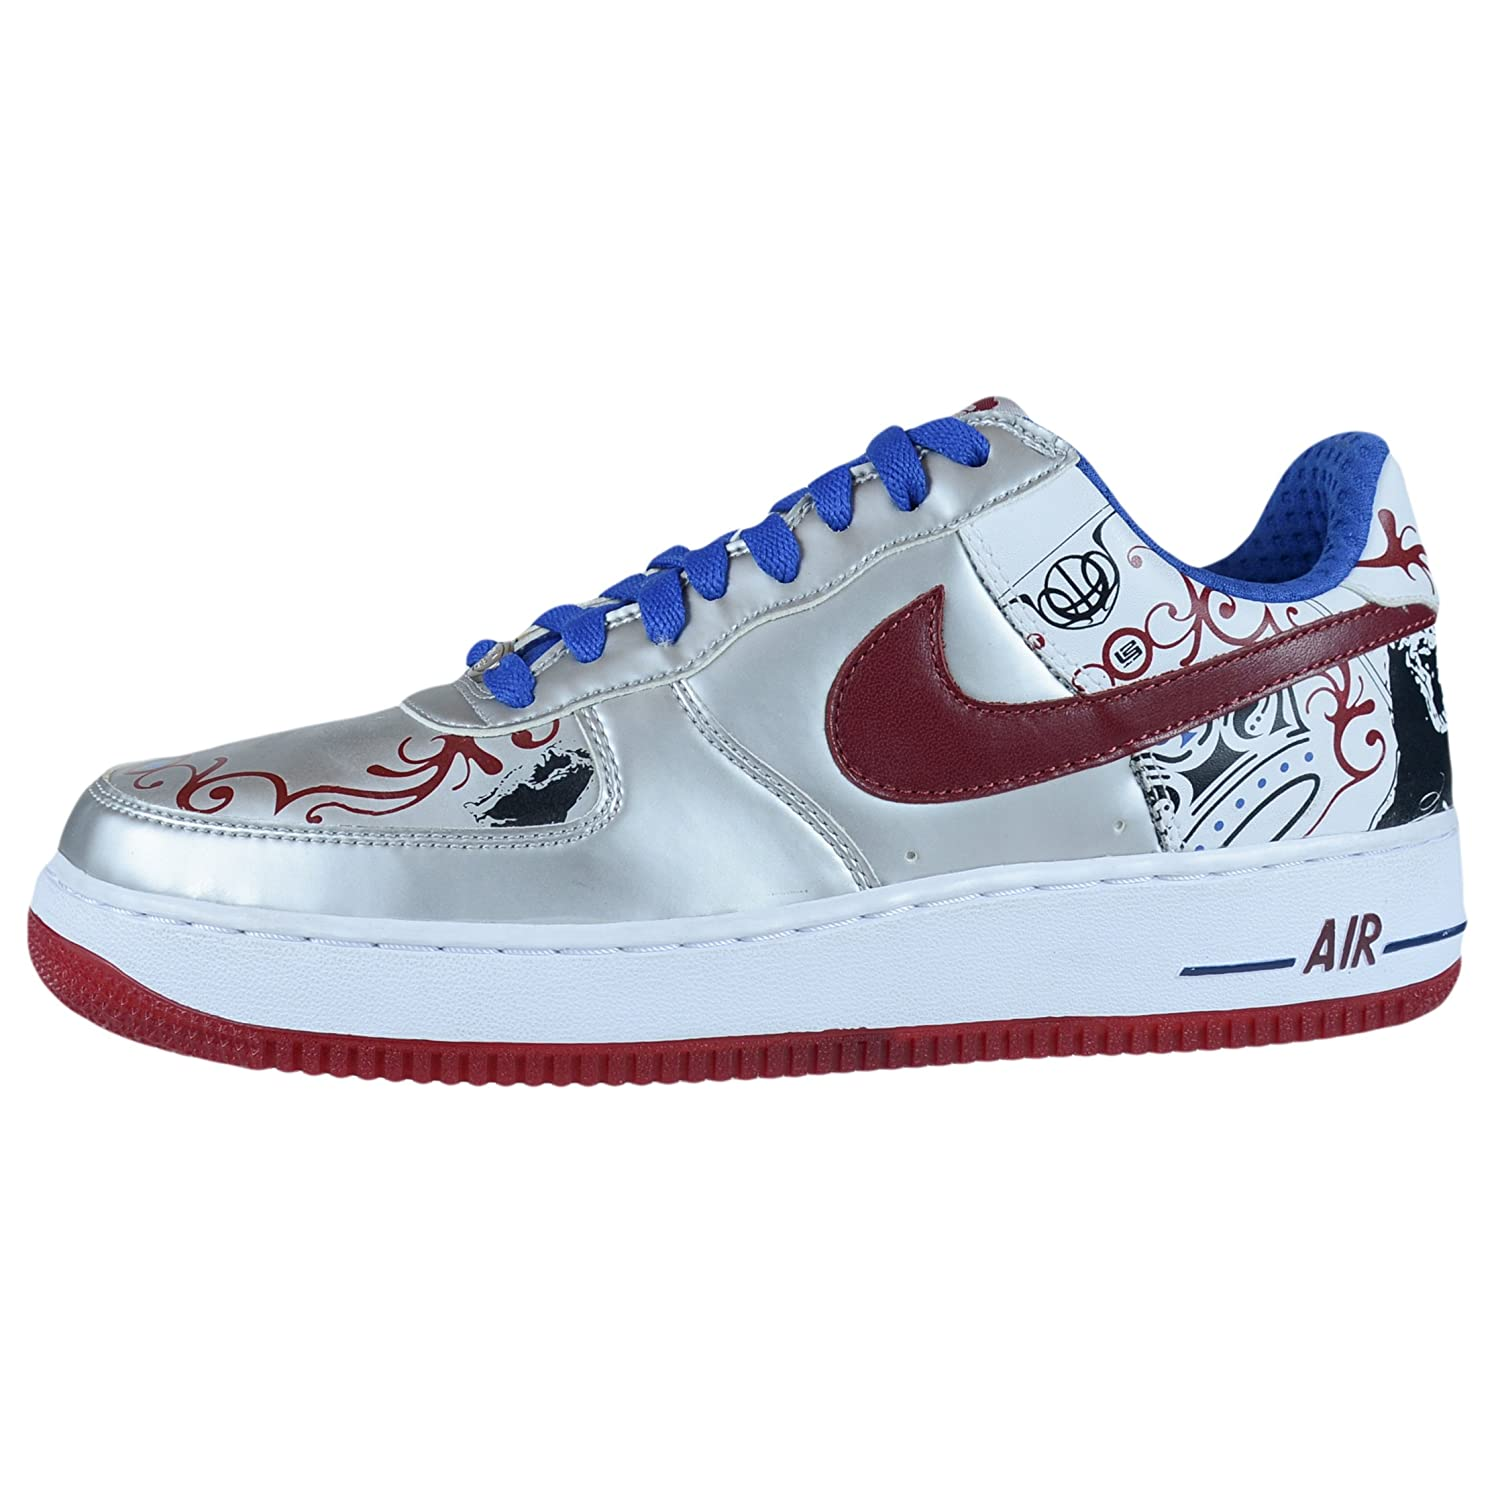 NIKE Air Force 1 Premium Lebron Collection Royale Silver 313985 061 Size 9:  Amazon.co.uk: Shoes & Bags